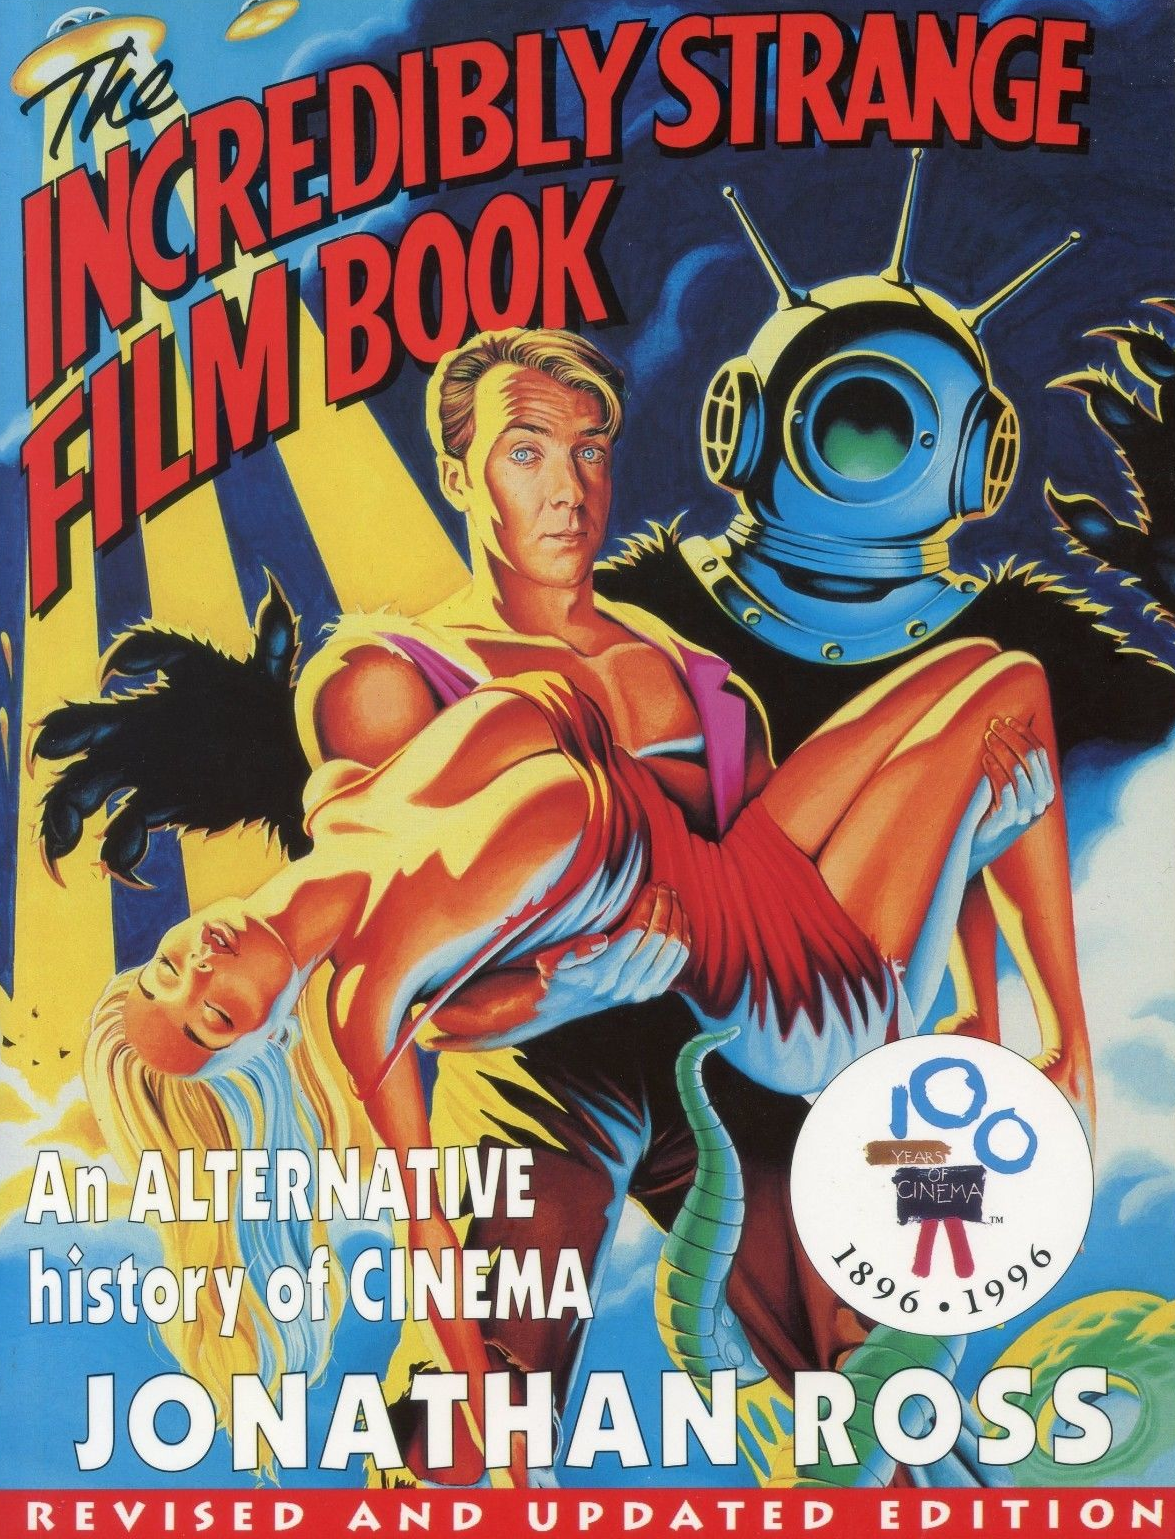 The Incredibly Strange Film Book by Jonathan Ross (Simon & Schuster, 1993).